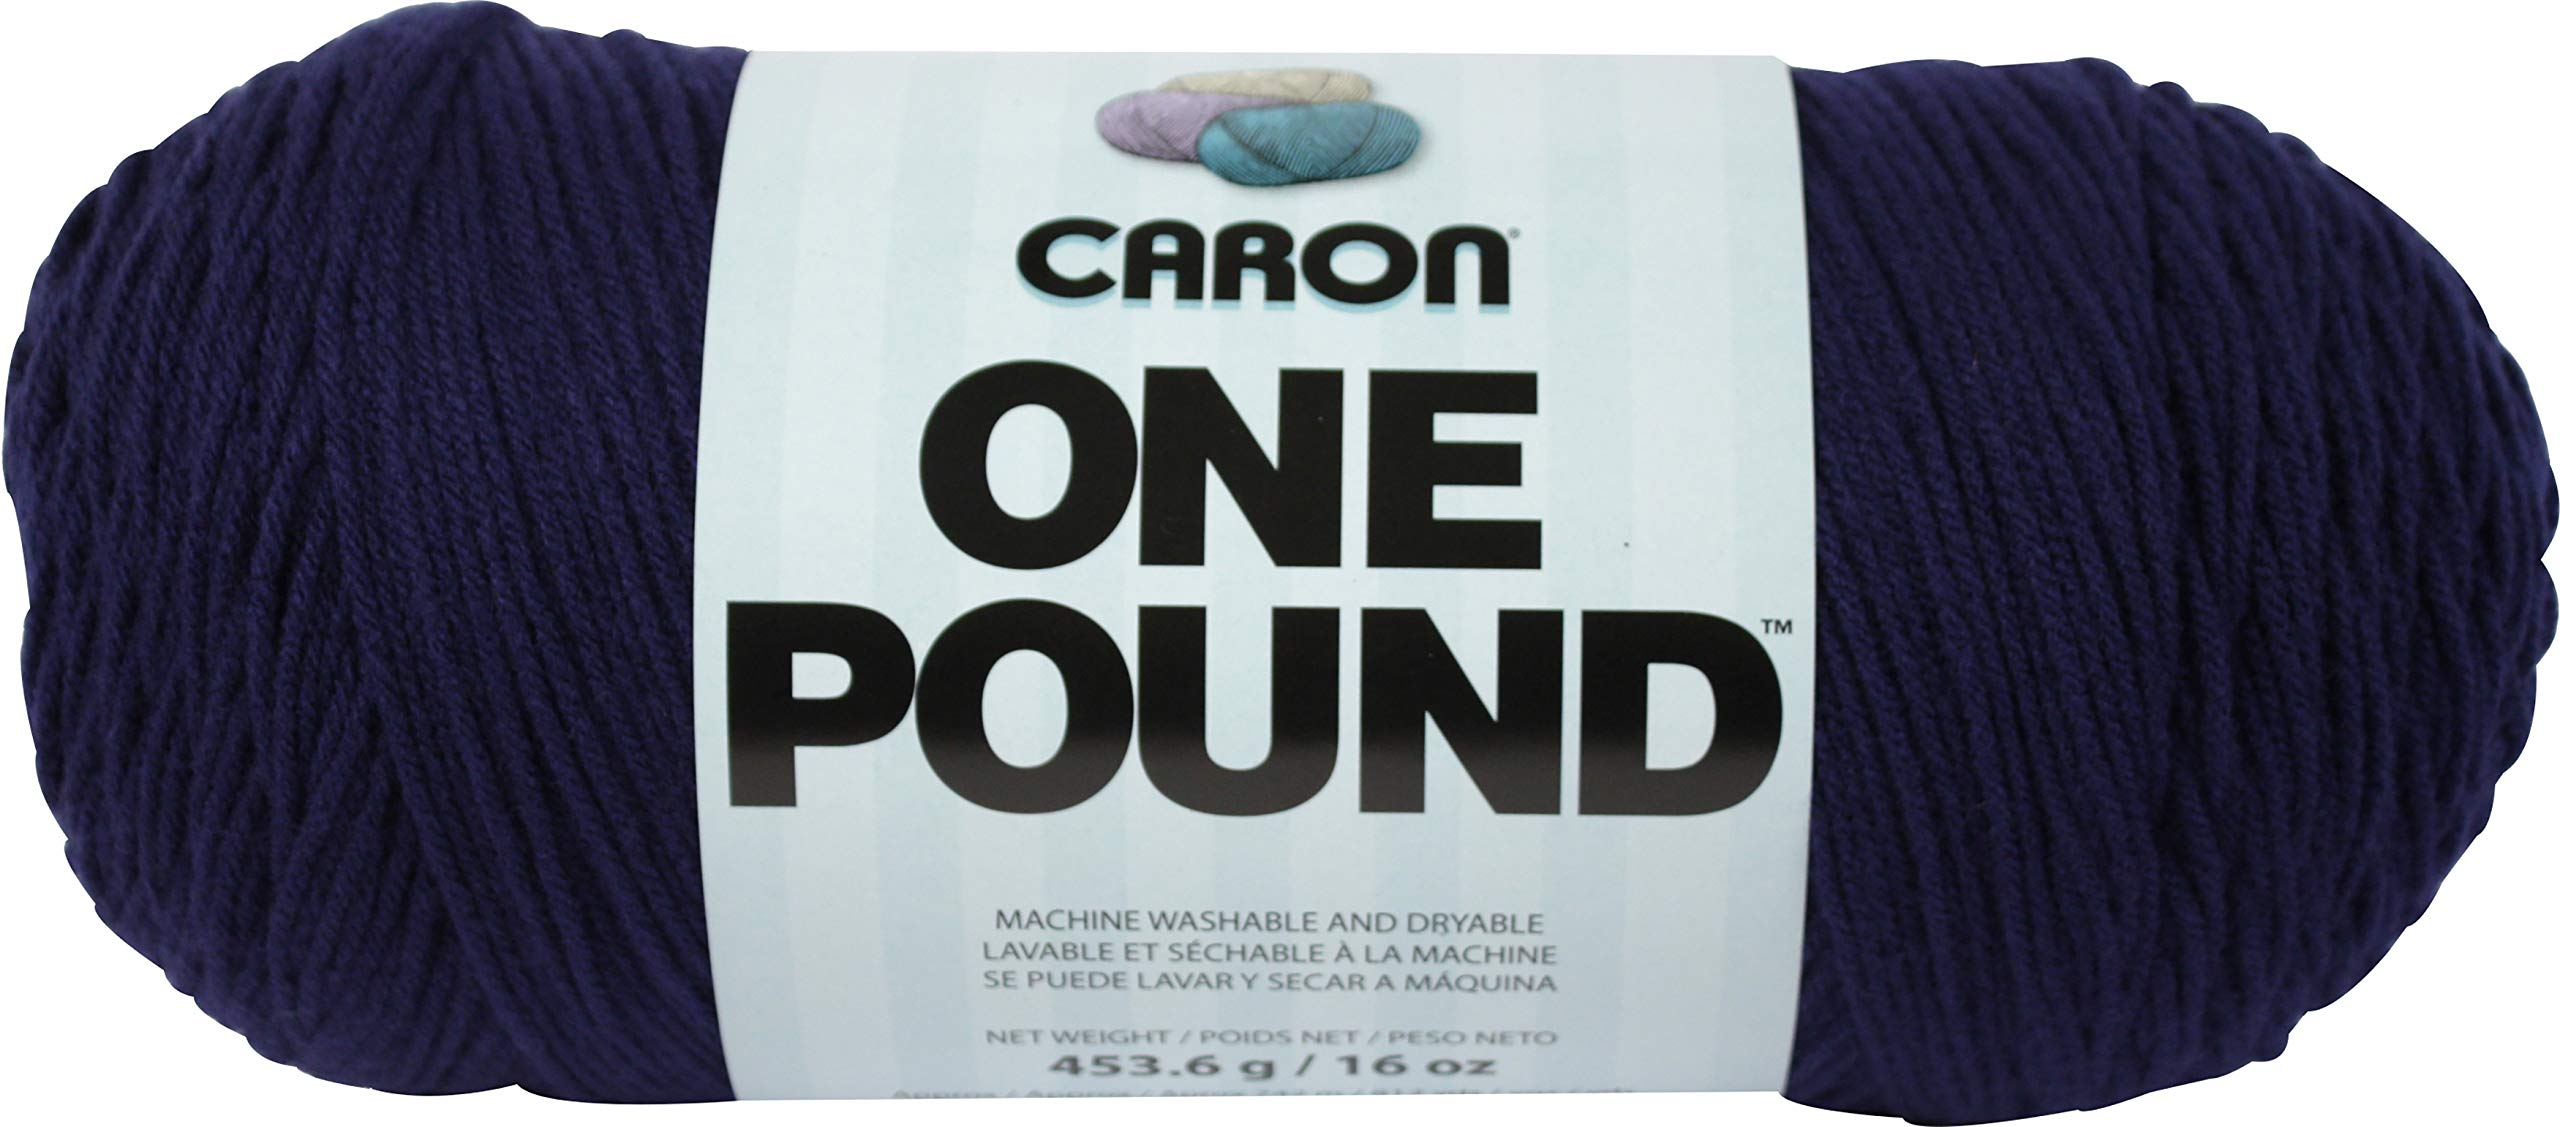 Caron 99583 One Pound Yarn-Midnight Blue, Multipack of 12, Pack by Caron (Image #2)